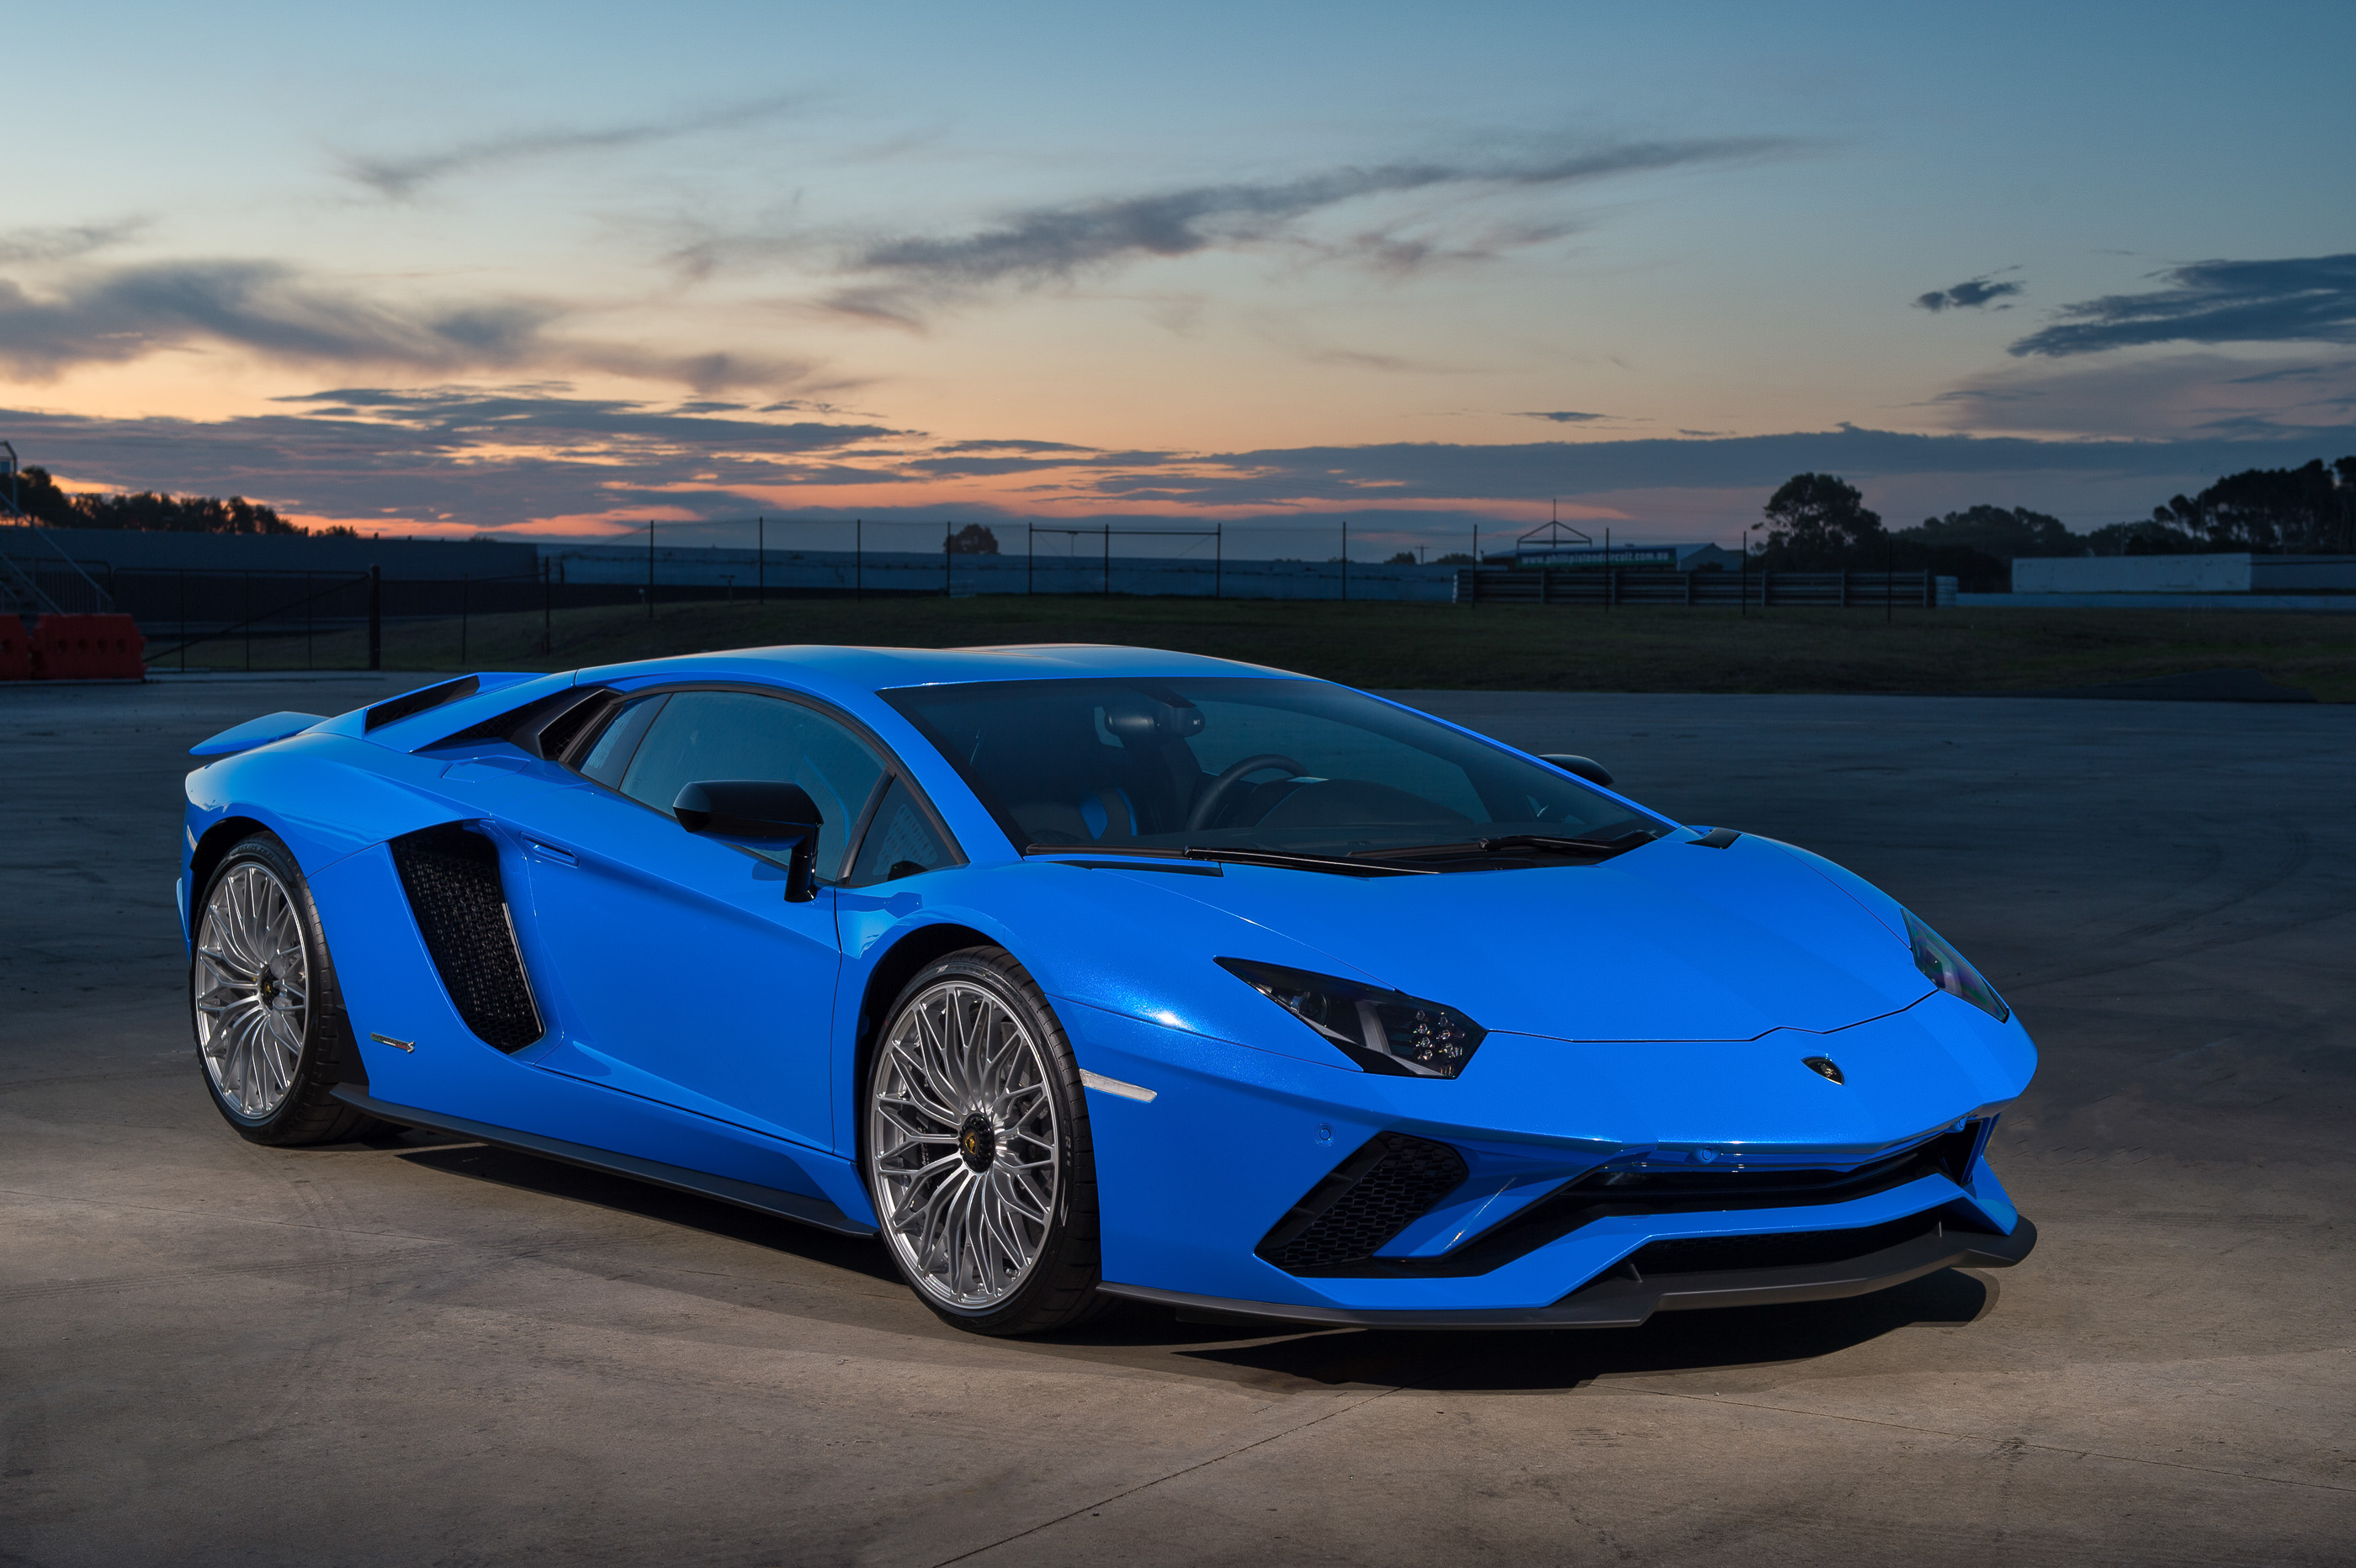 Lamborghini Aventador S photo 175846